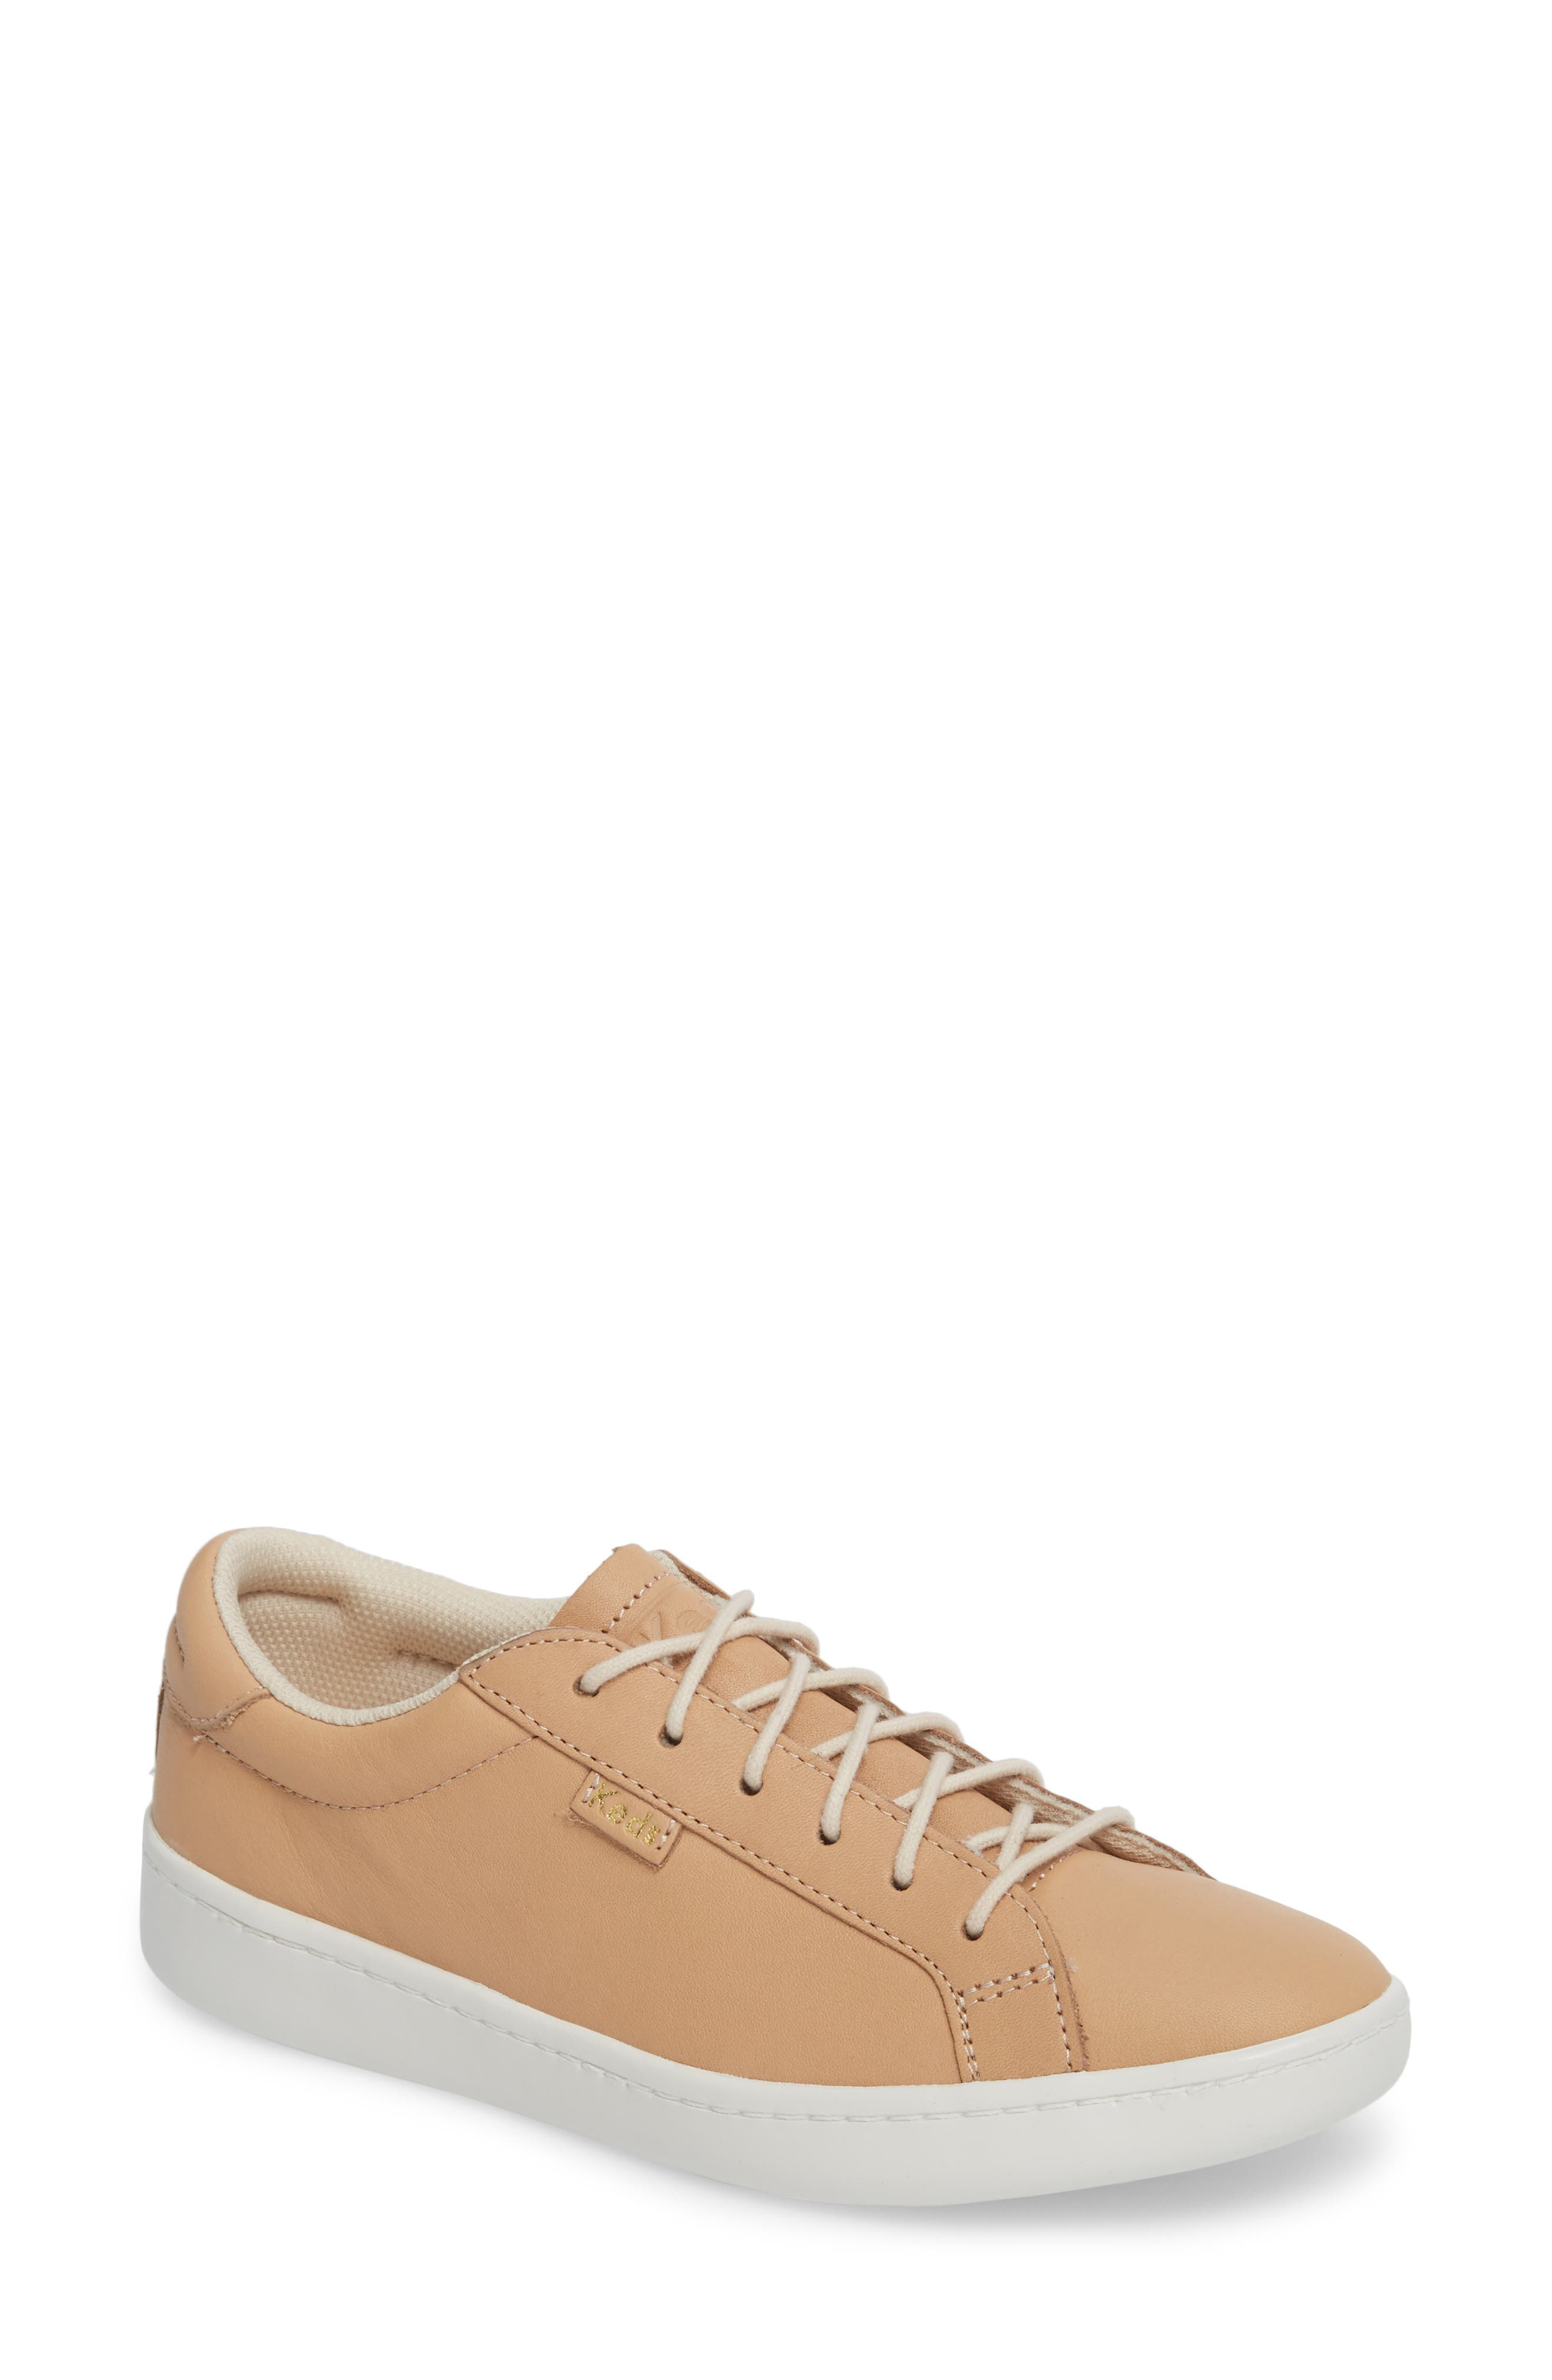 Ace Leather Sneaker,                         Main,                         color,